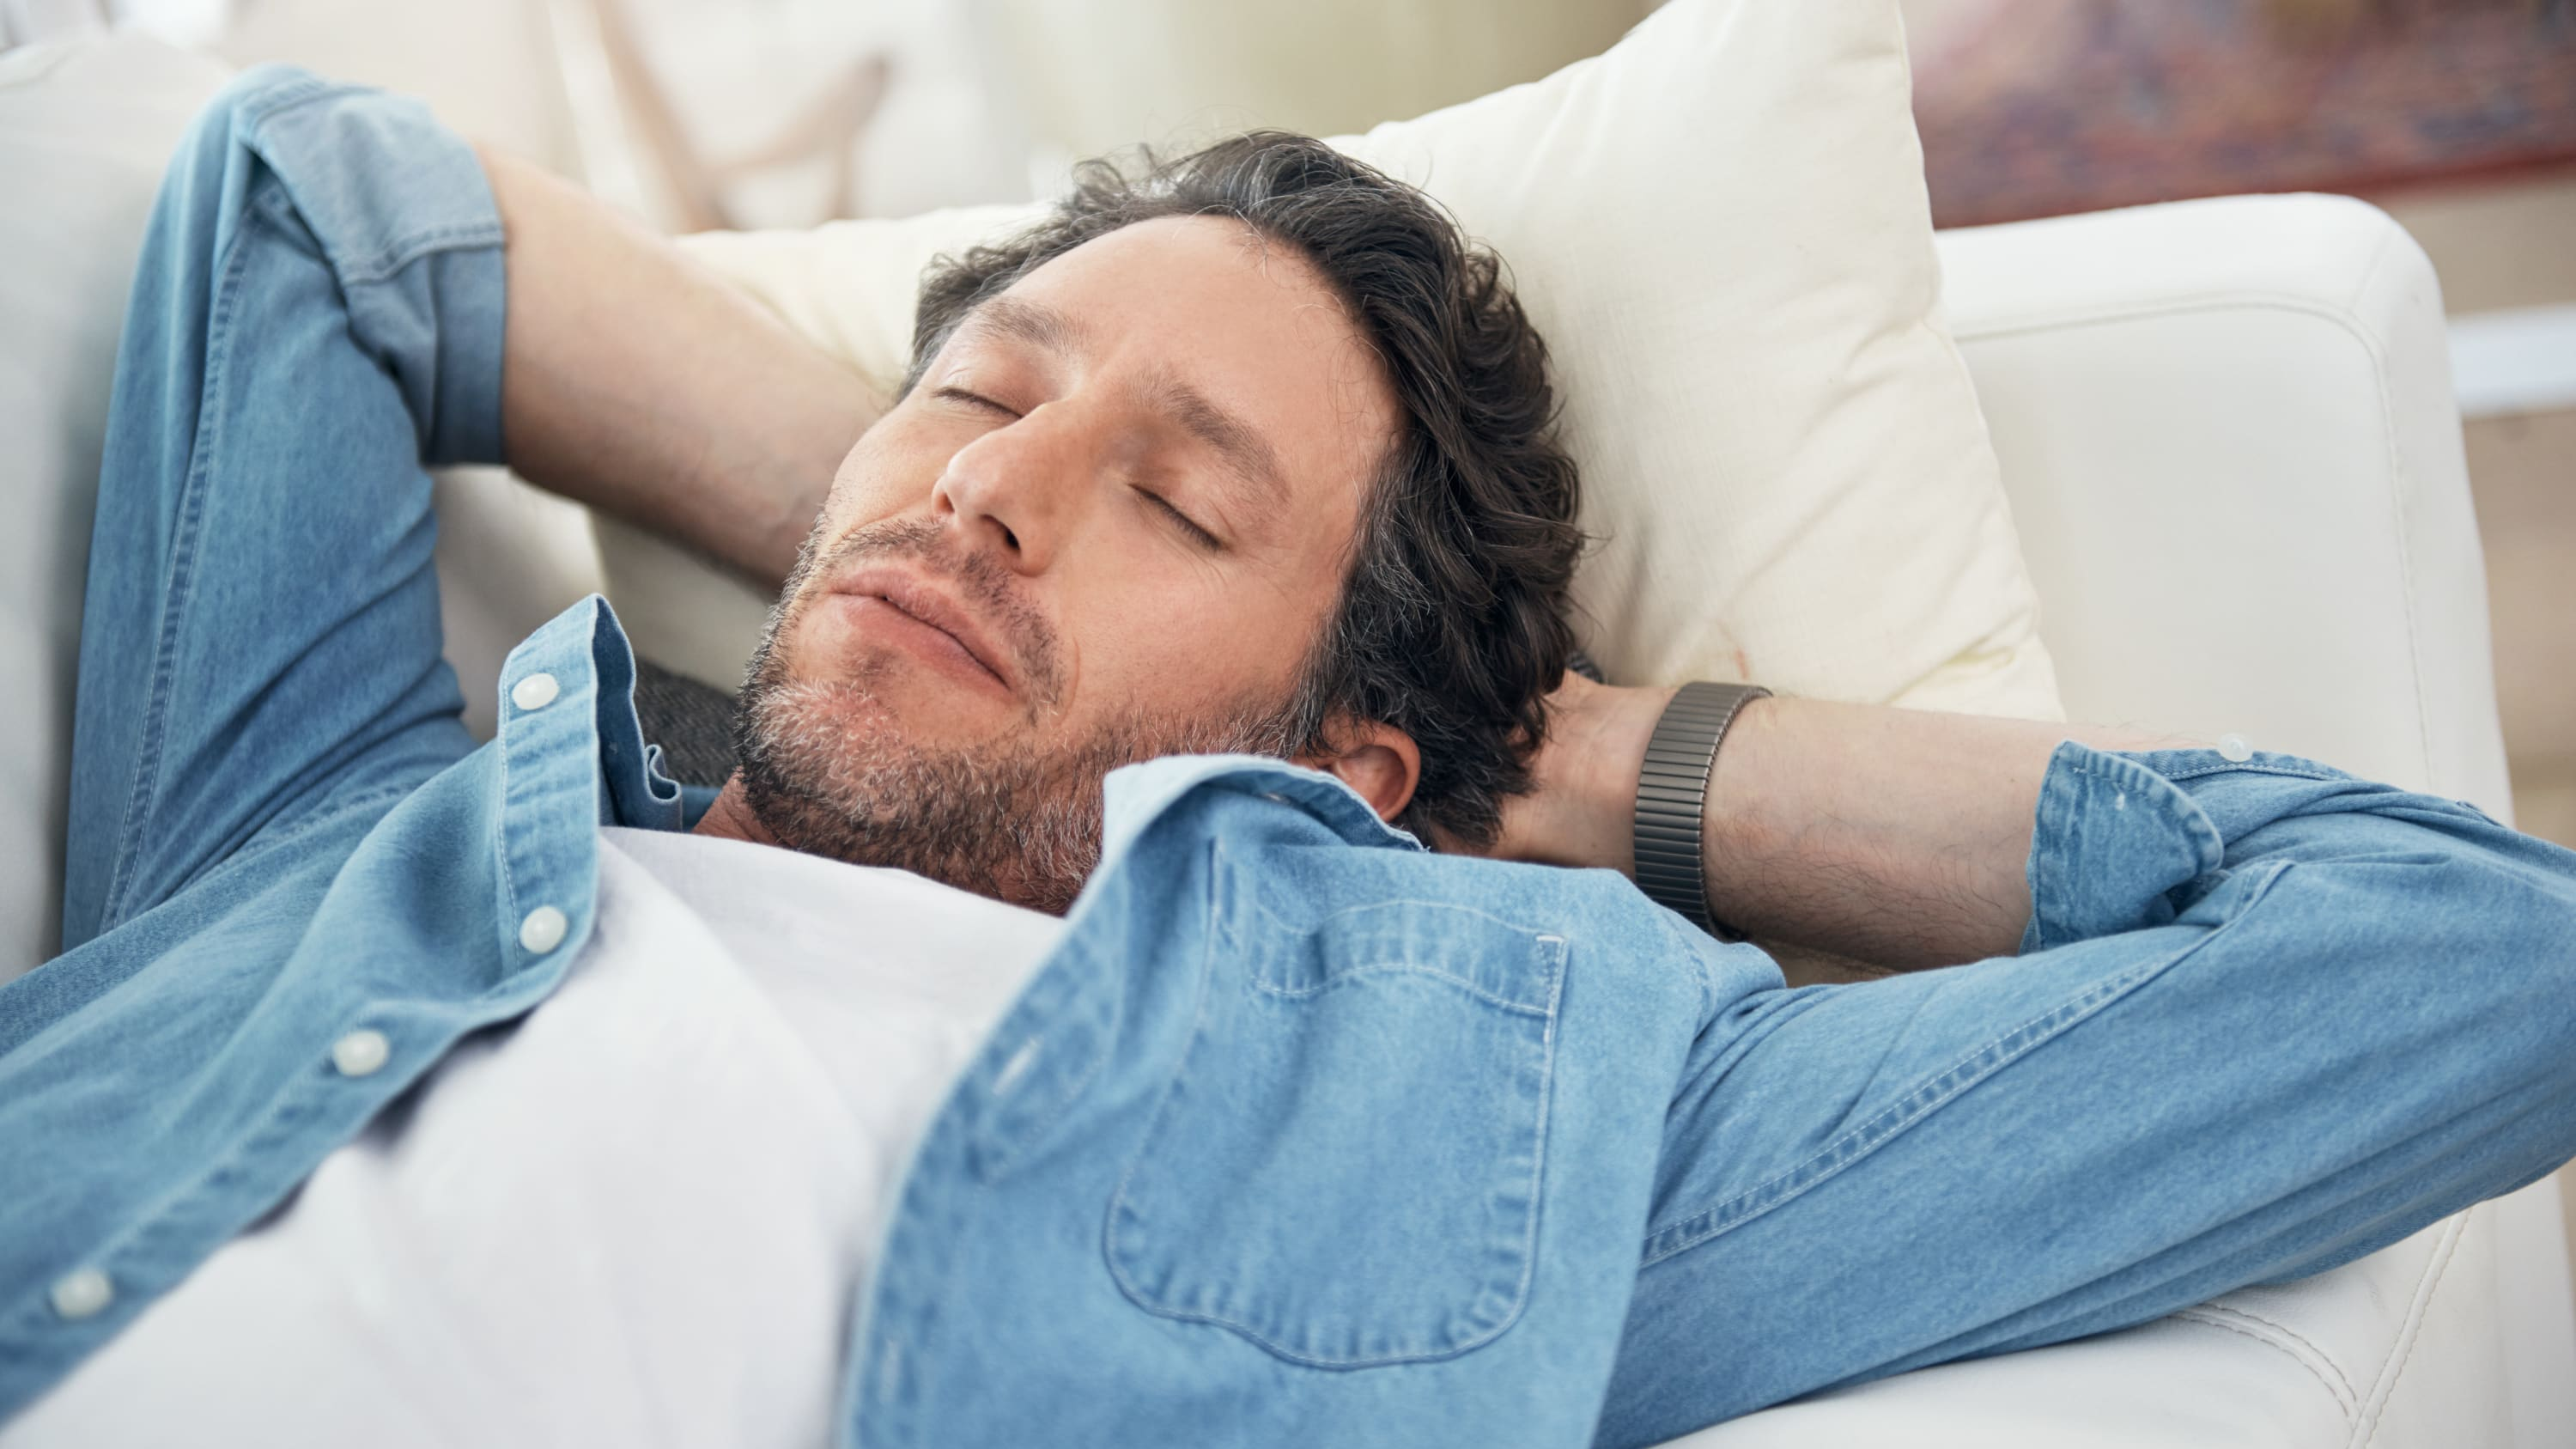 A man relaxes on a bed, possibly someone with marijuana use disorder